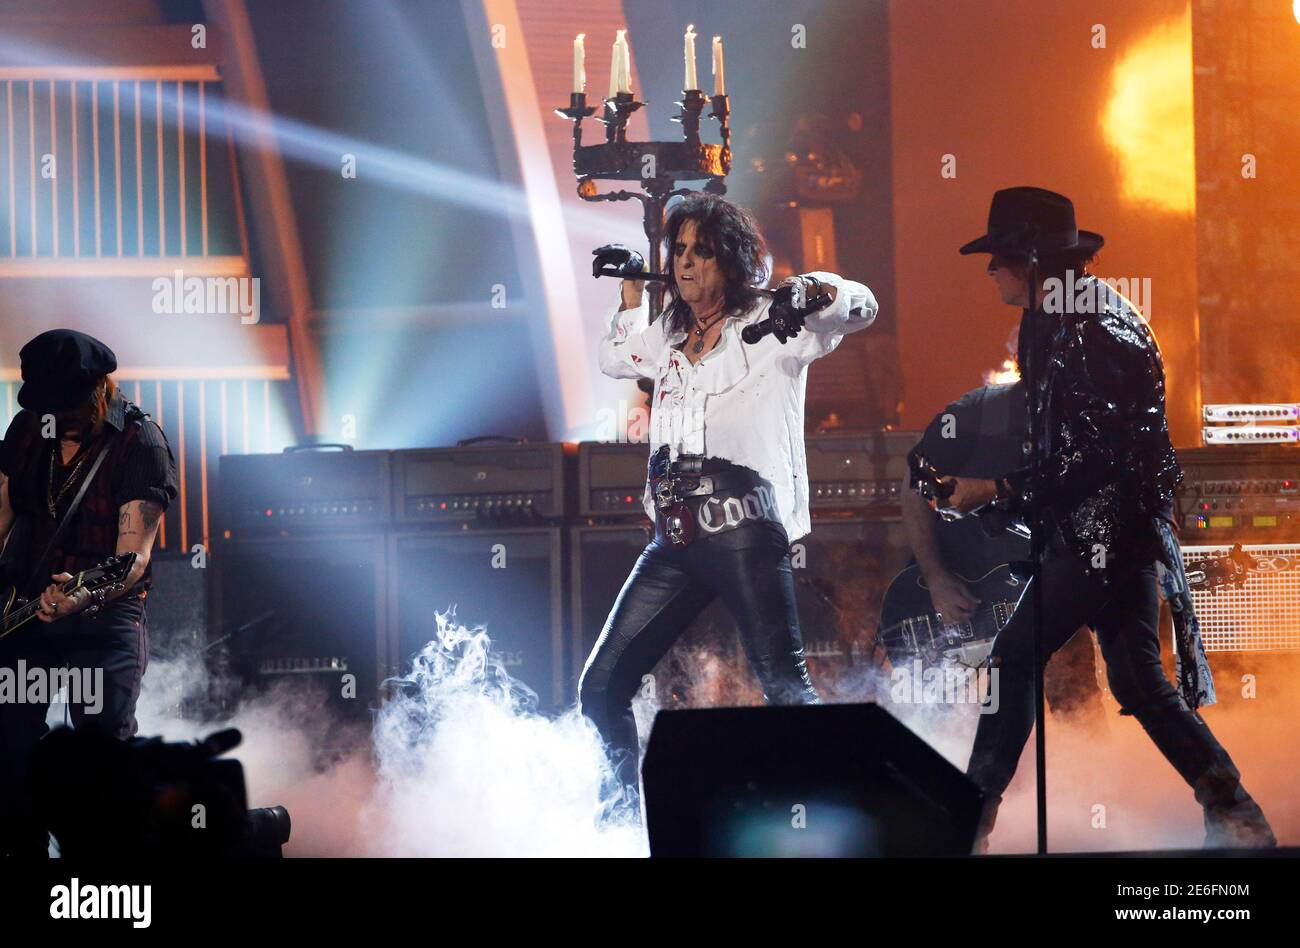 Joe Perry Alice Cooper Christmas Pudding 2021 Johnny Depp And Alice Cooper High Resolution Stock Photography And Images Alamy